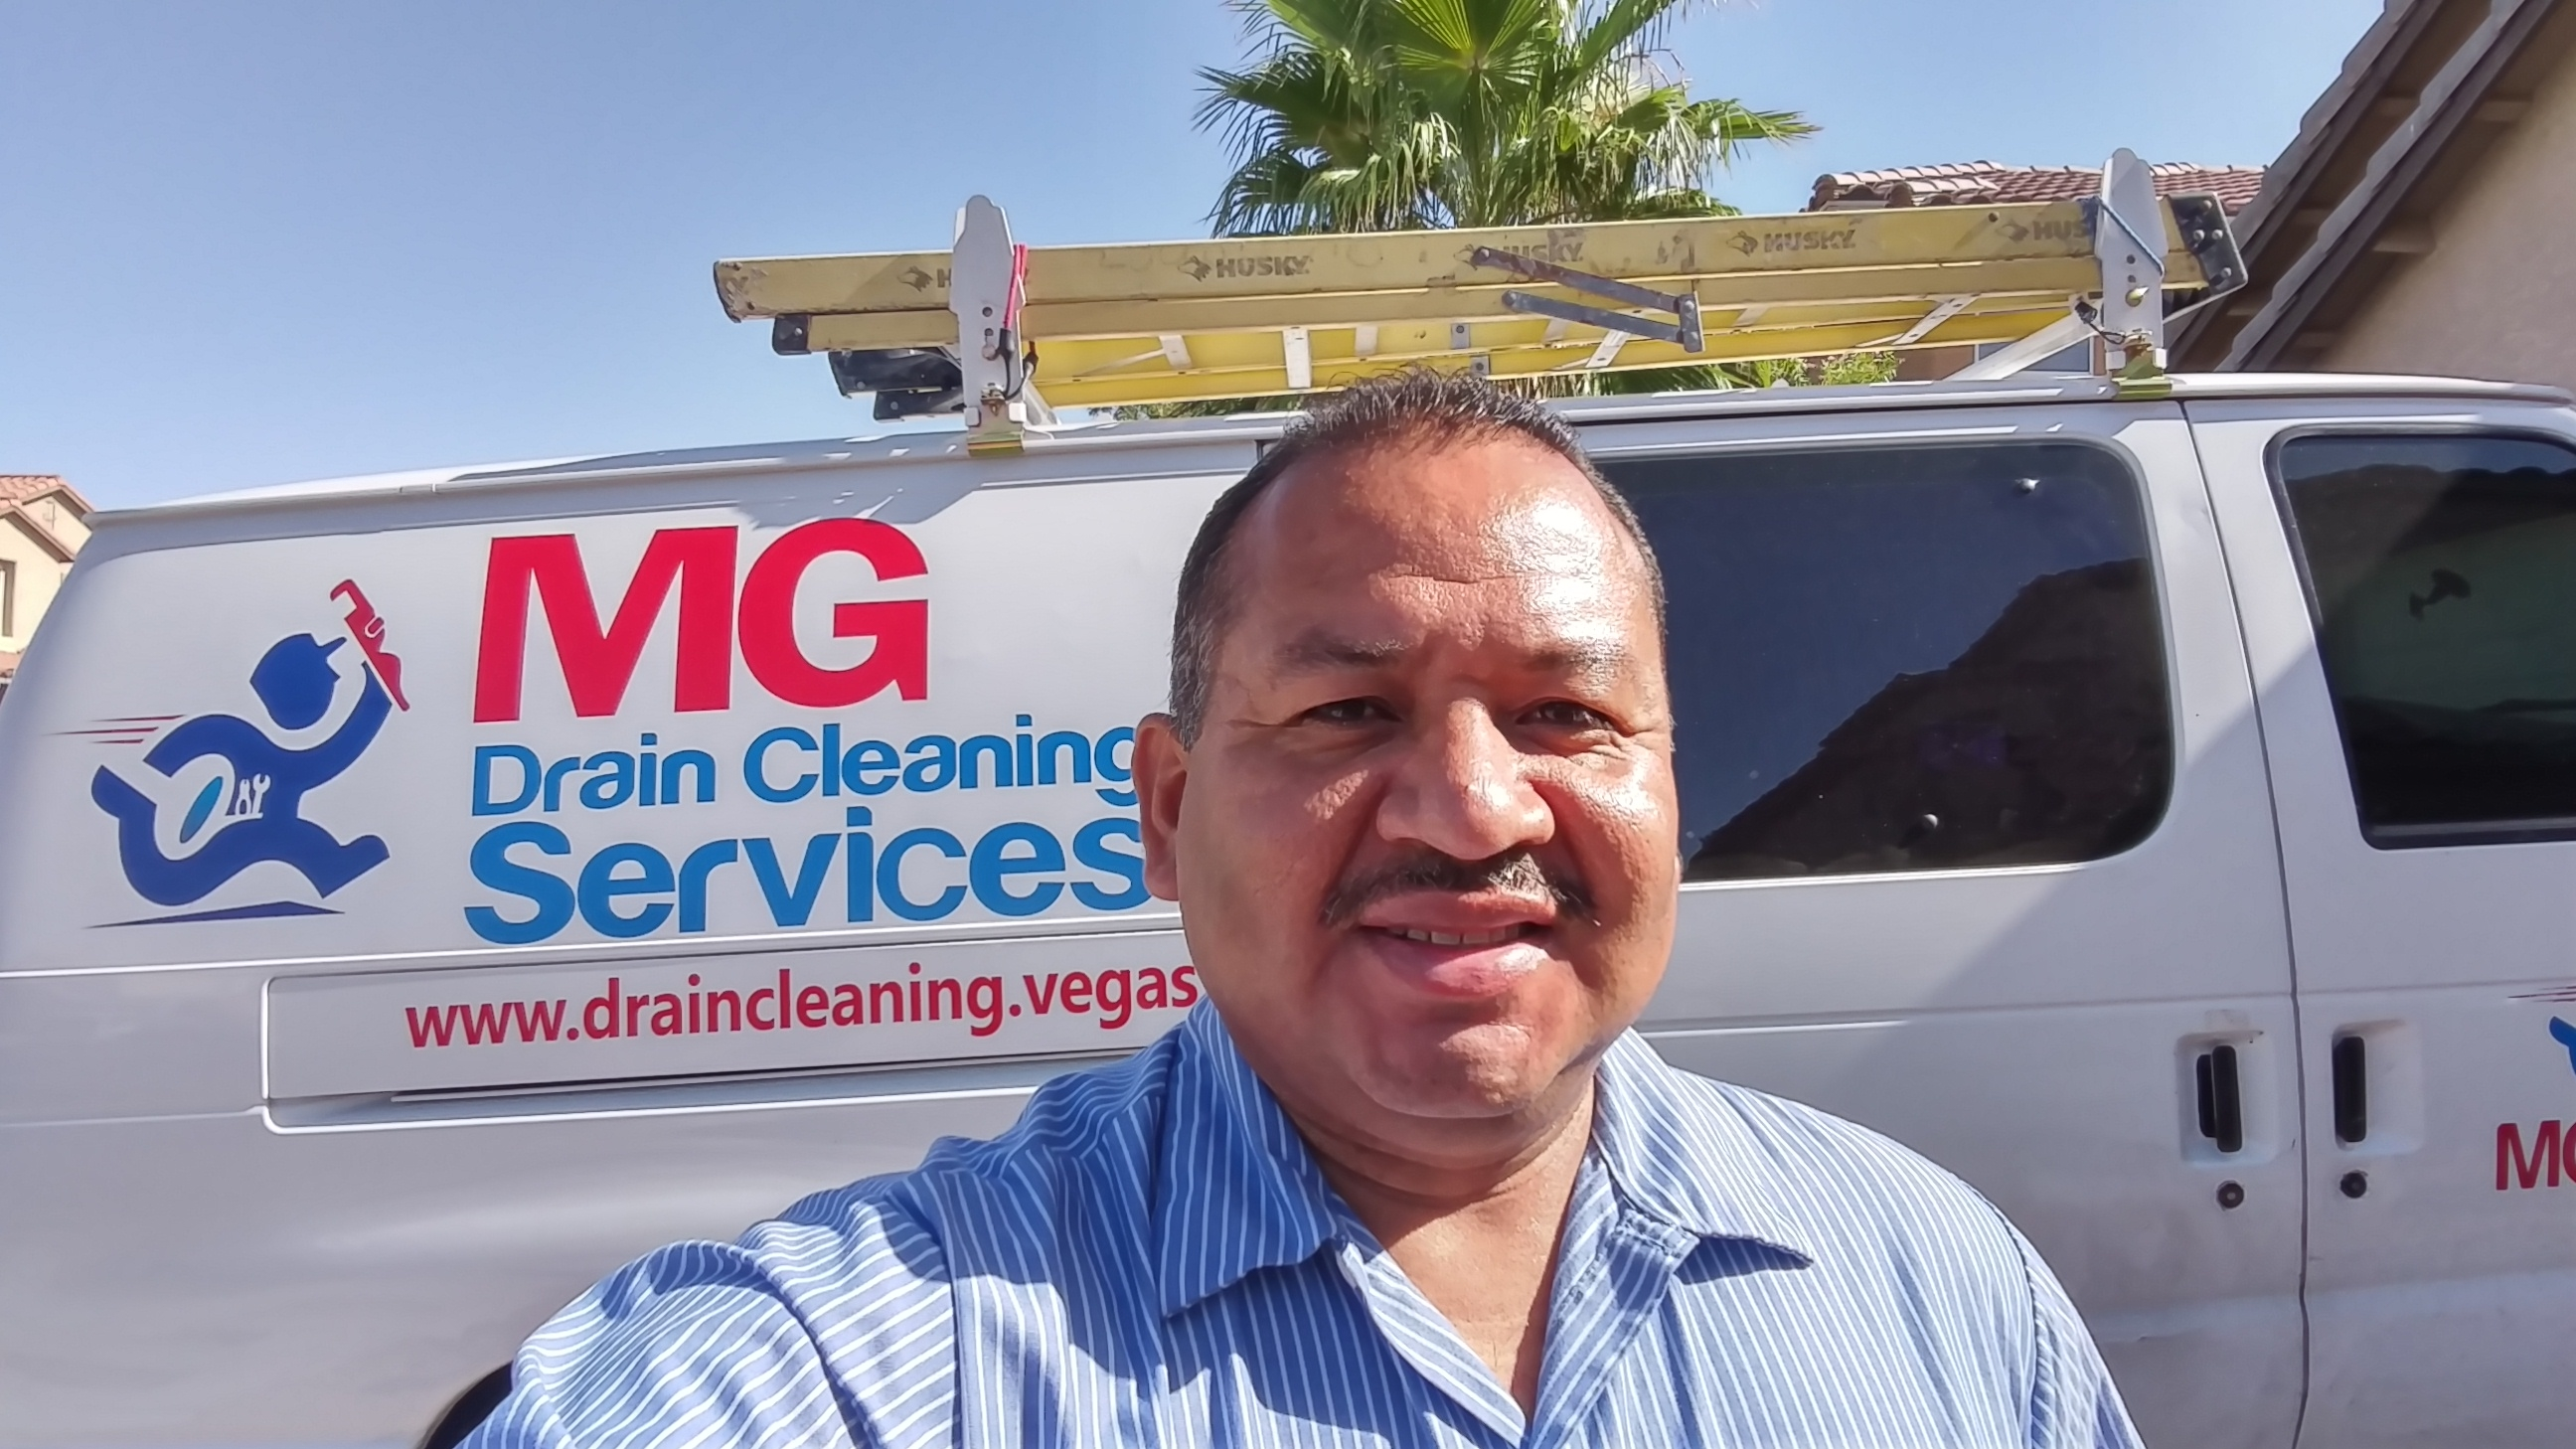 Mg Drain Cleaning Services Las Vegas Nevada Nv